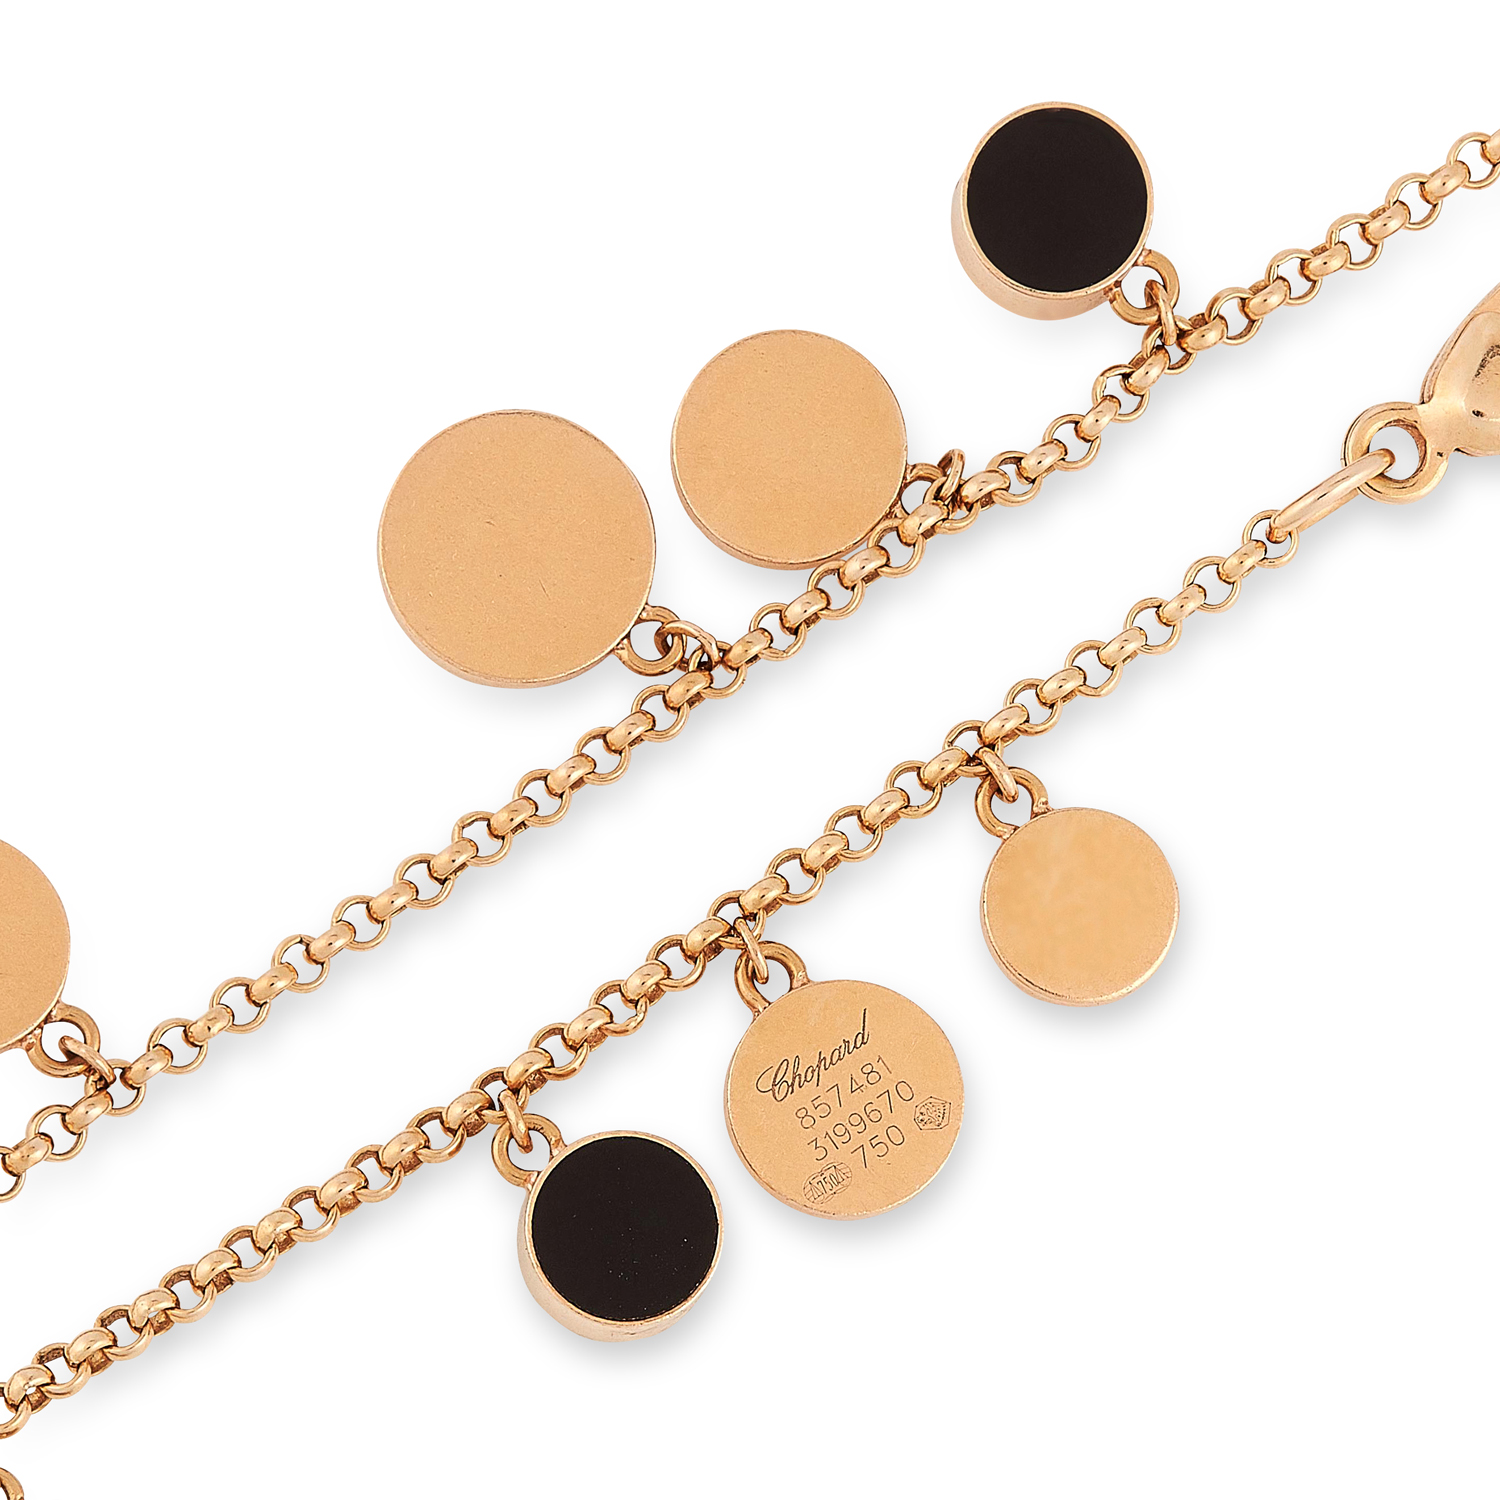 A HAPPY DIAMONDS BRACELET, CHOPARD suspending circular discs and charms set with round cut diamonds, - Image 2 of 2